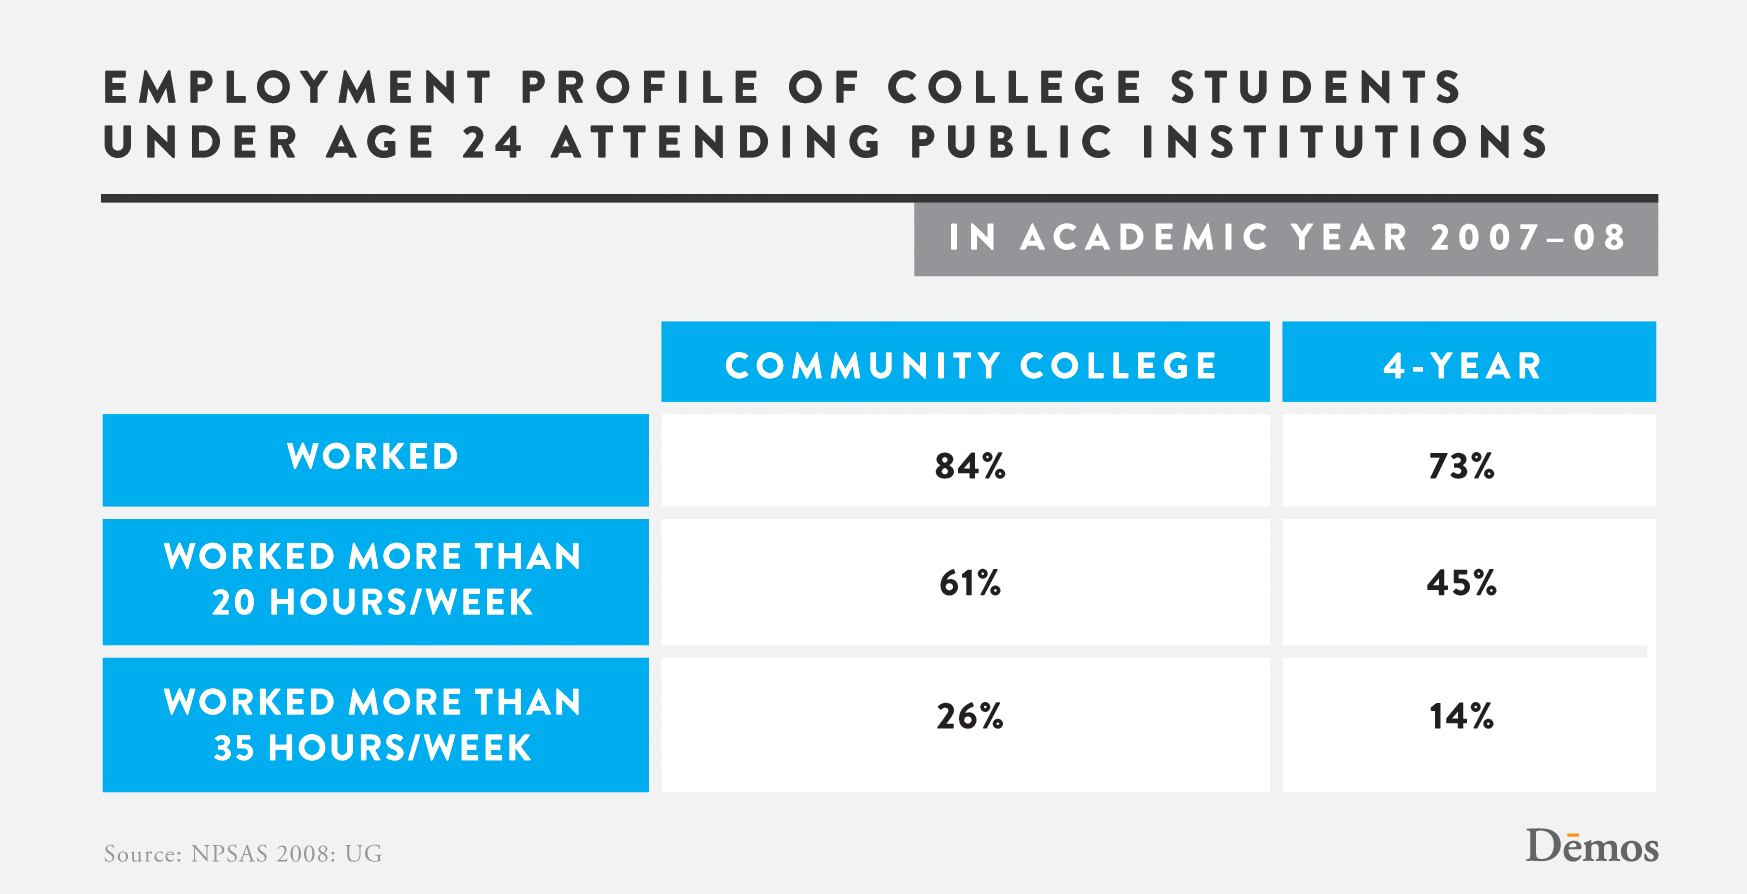 Employment Profile Of College Students Under Age 24